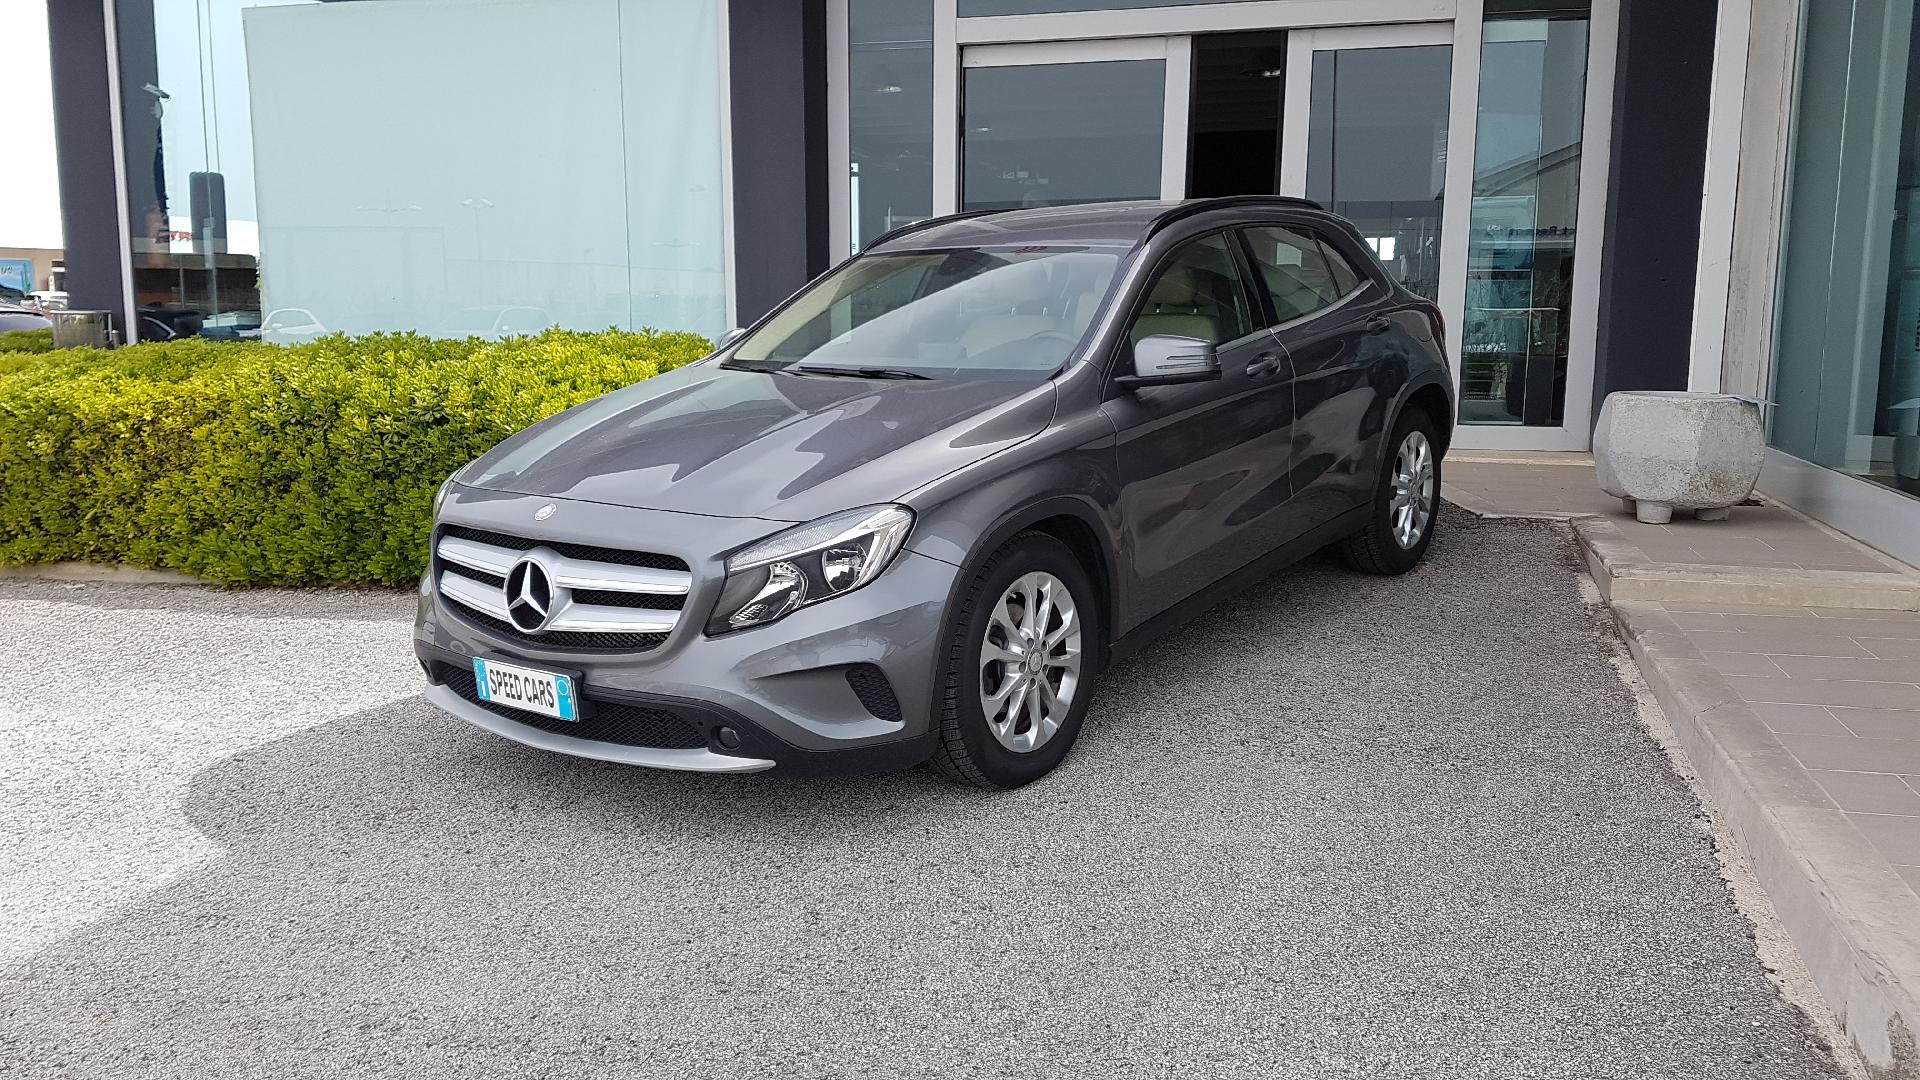 Mercedes-Benz GLA 200 D Executive Diesel